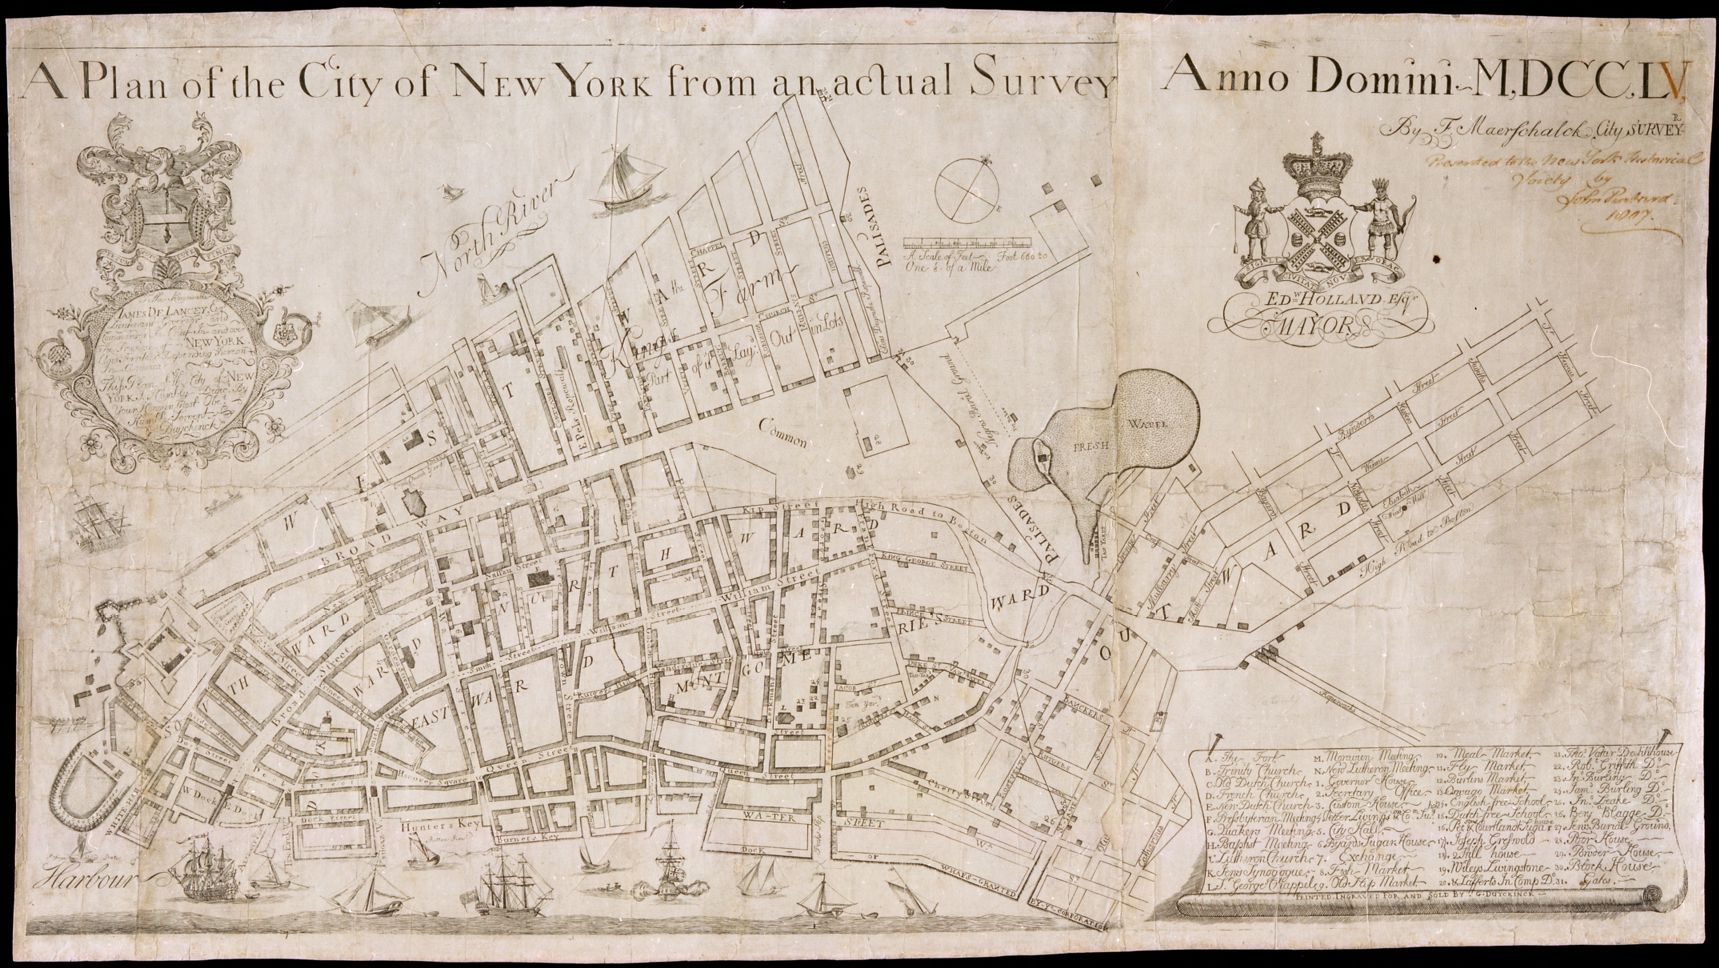 A plan of the City of New York from an actual survey anno domini MDCCLV